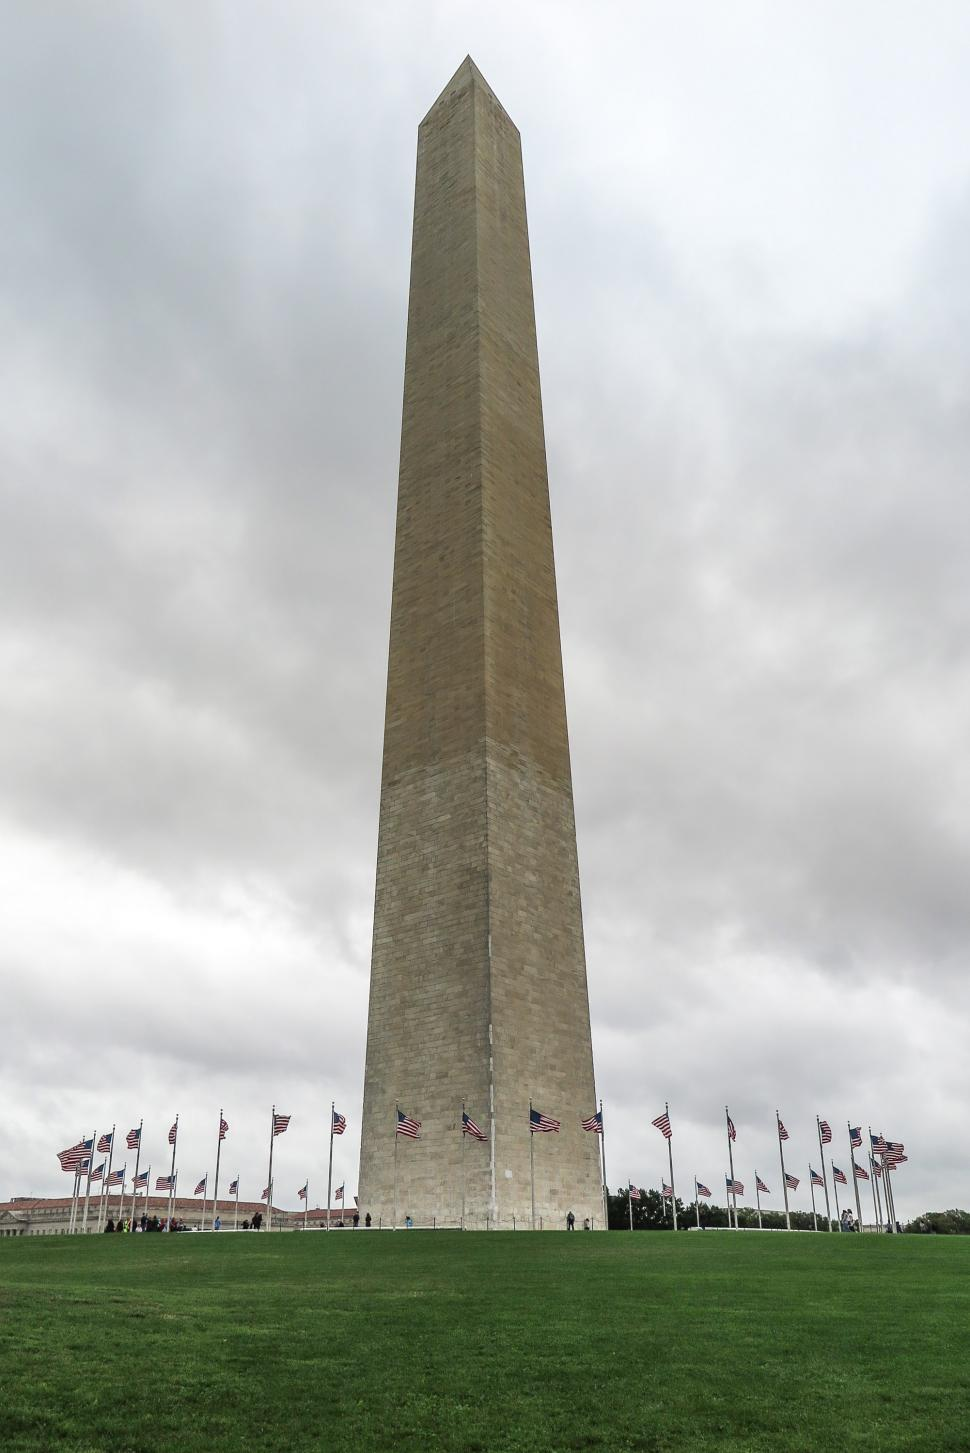 Download Free Stock Photo of Washington Monument wirh circle of US Flags